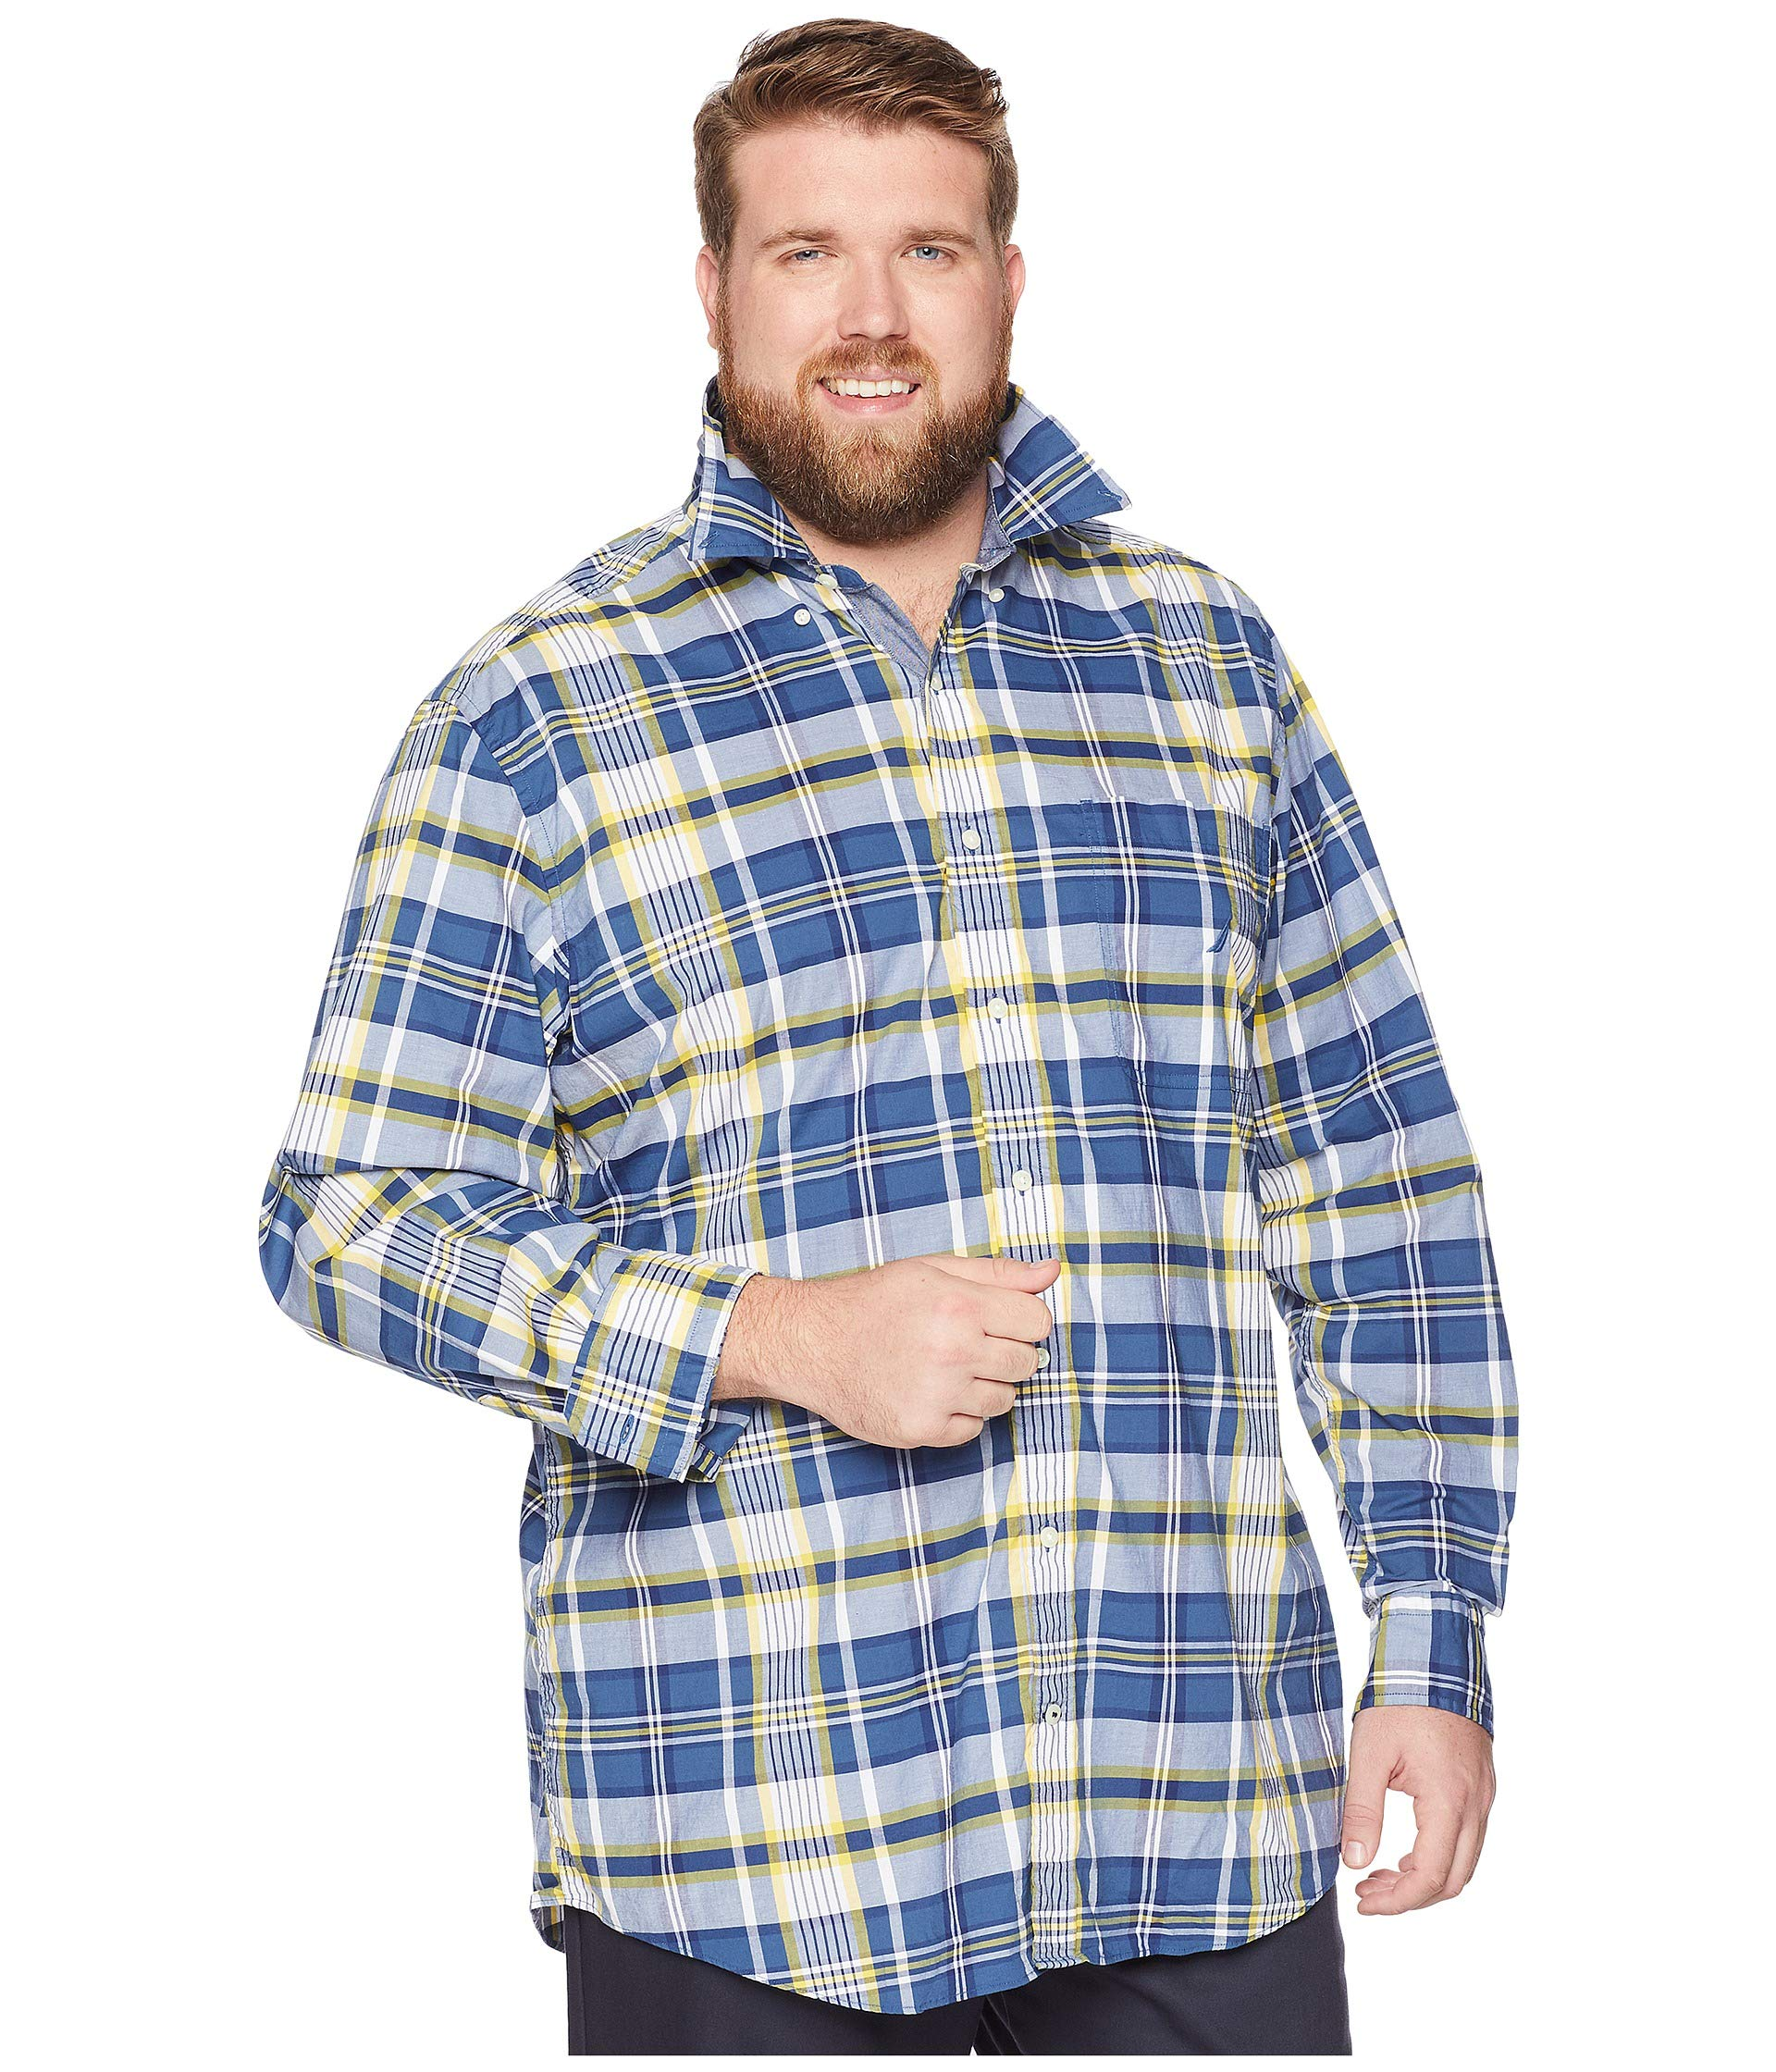 Ensign Big Nautica amp; Blue Casual Tall Plaid Shirt qaAA4nrc